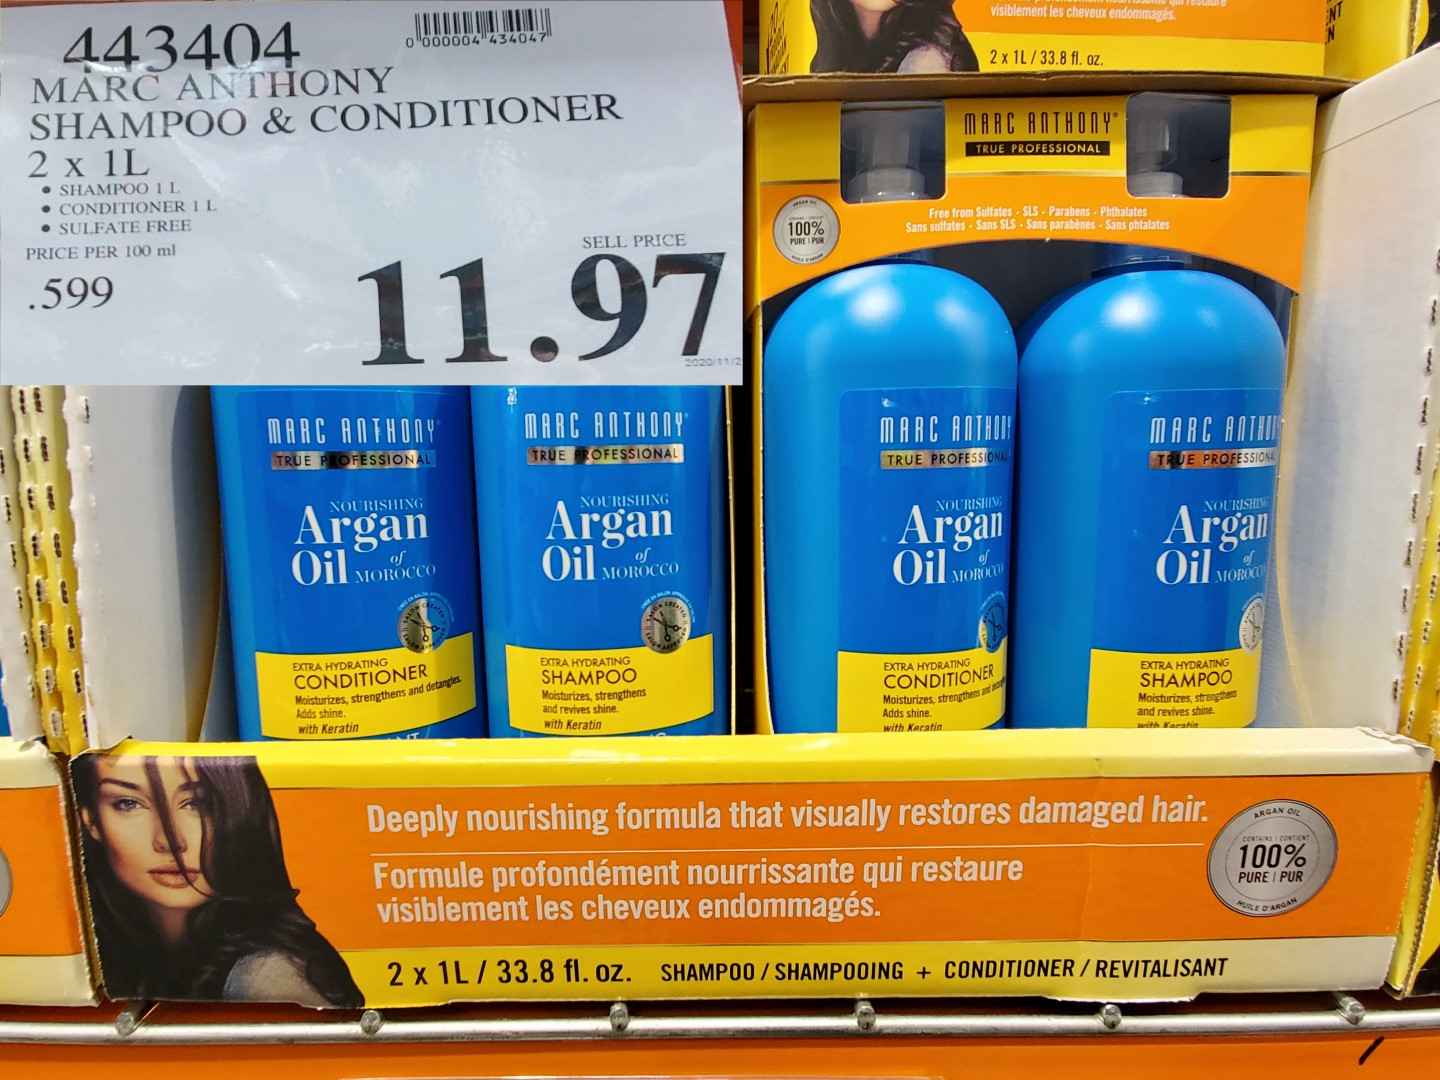 marc anthony shampoo and conditioner